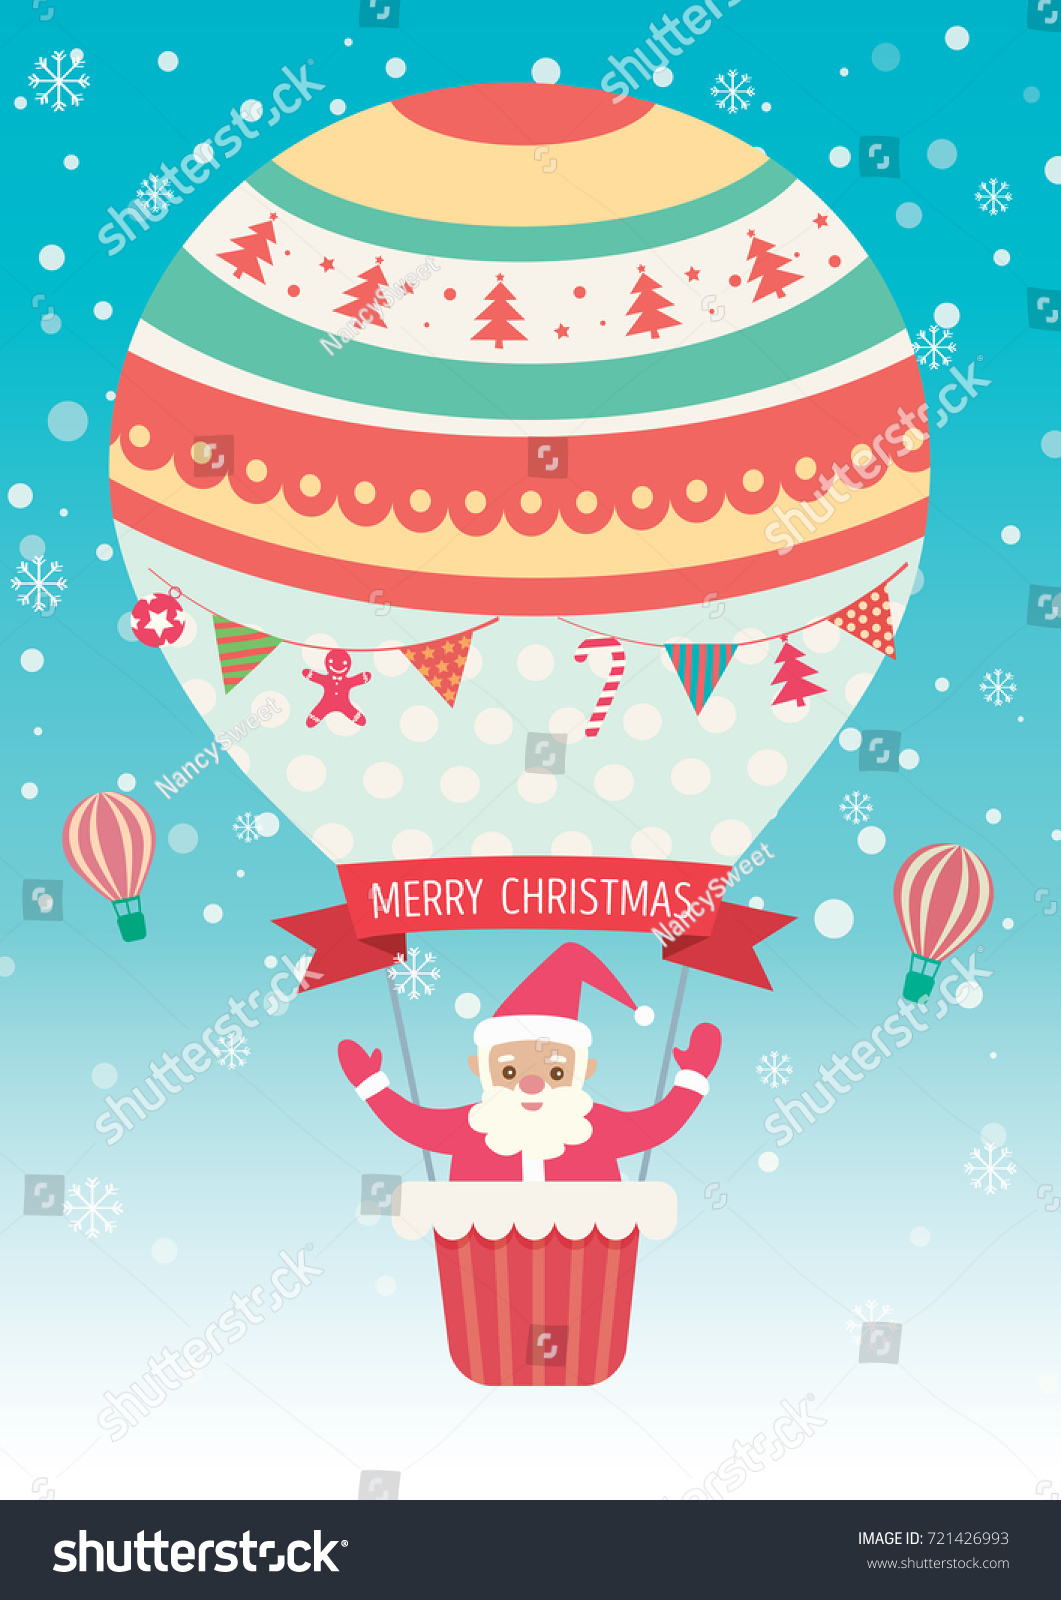 Merry Christmas Card Santa Claus On Stock Vector Royalty Free